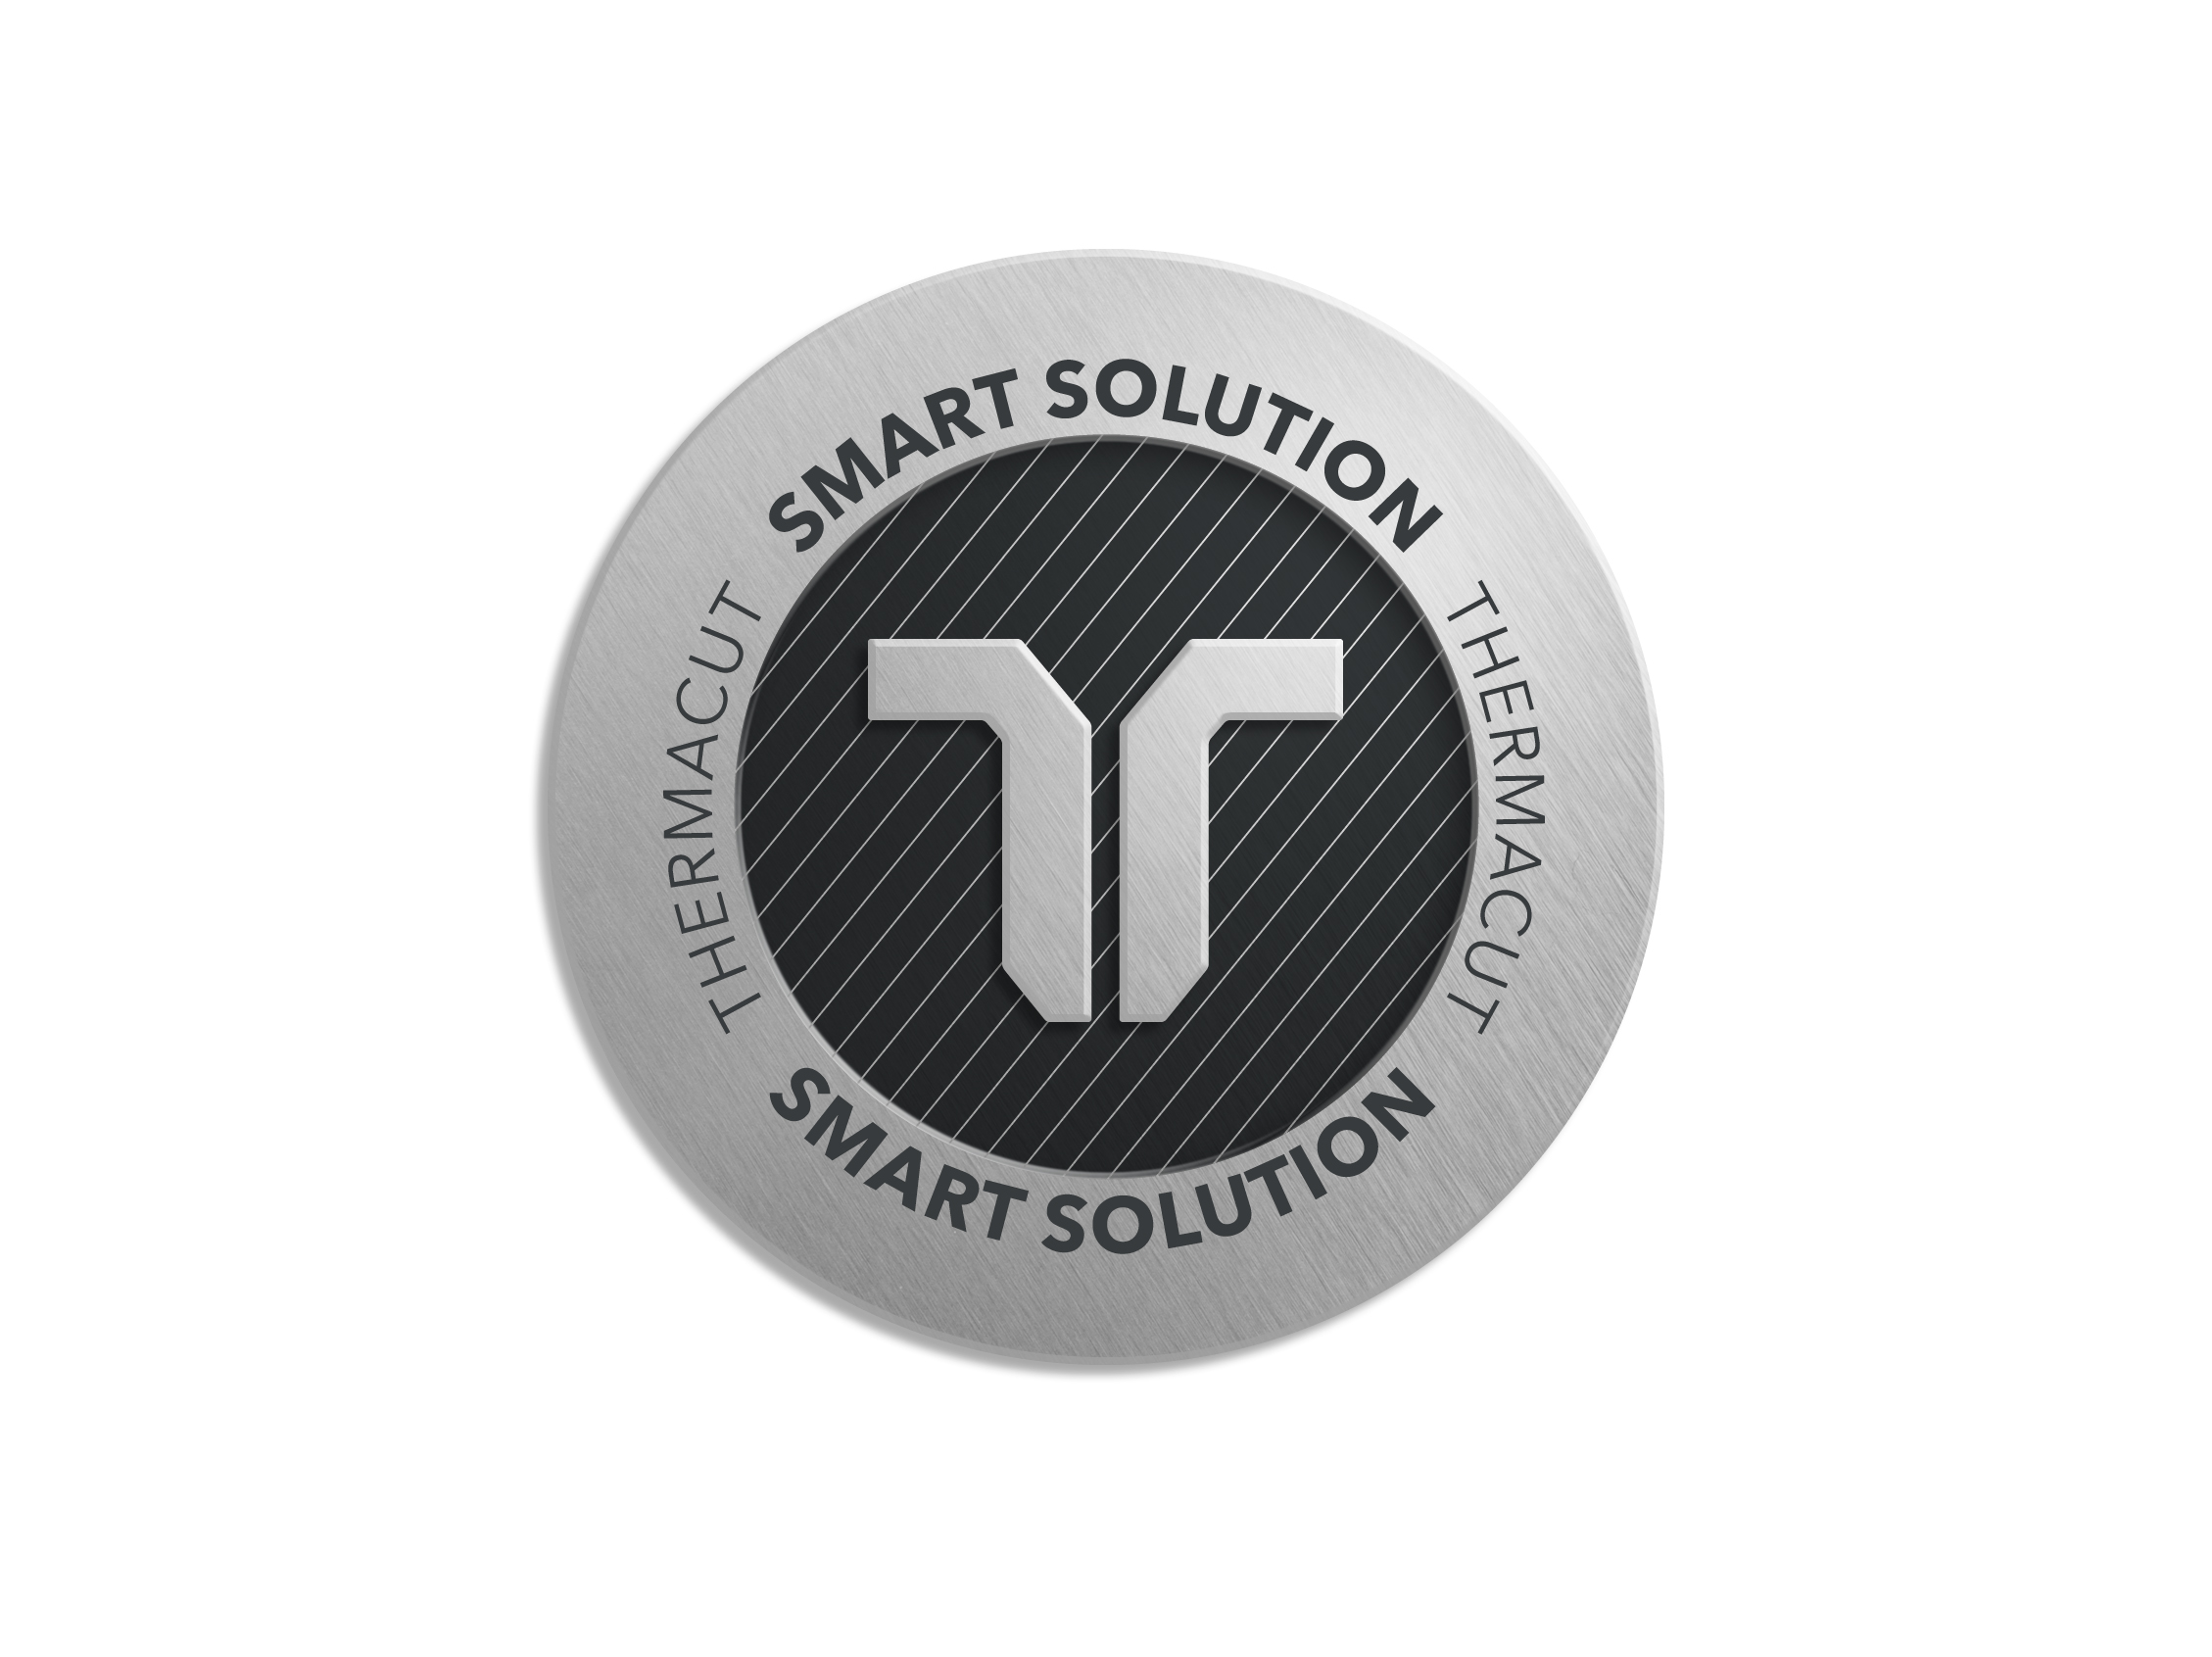 smart solution logo GRAY